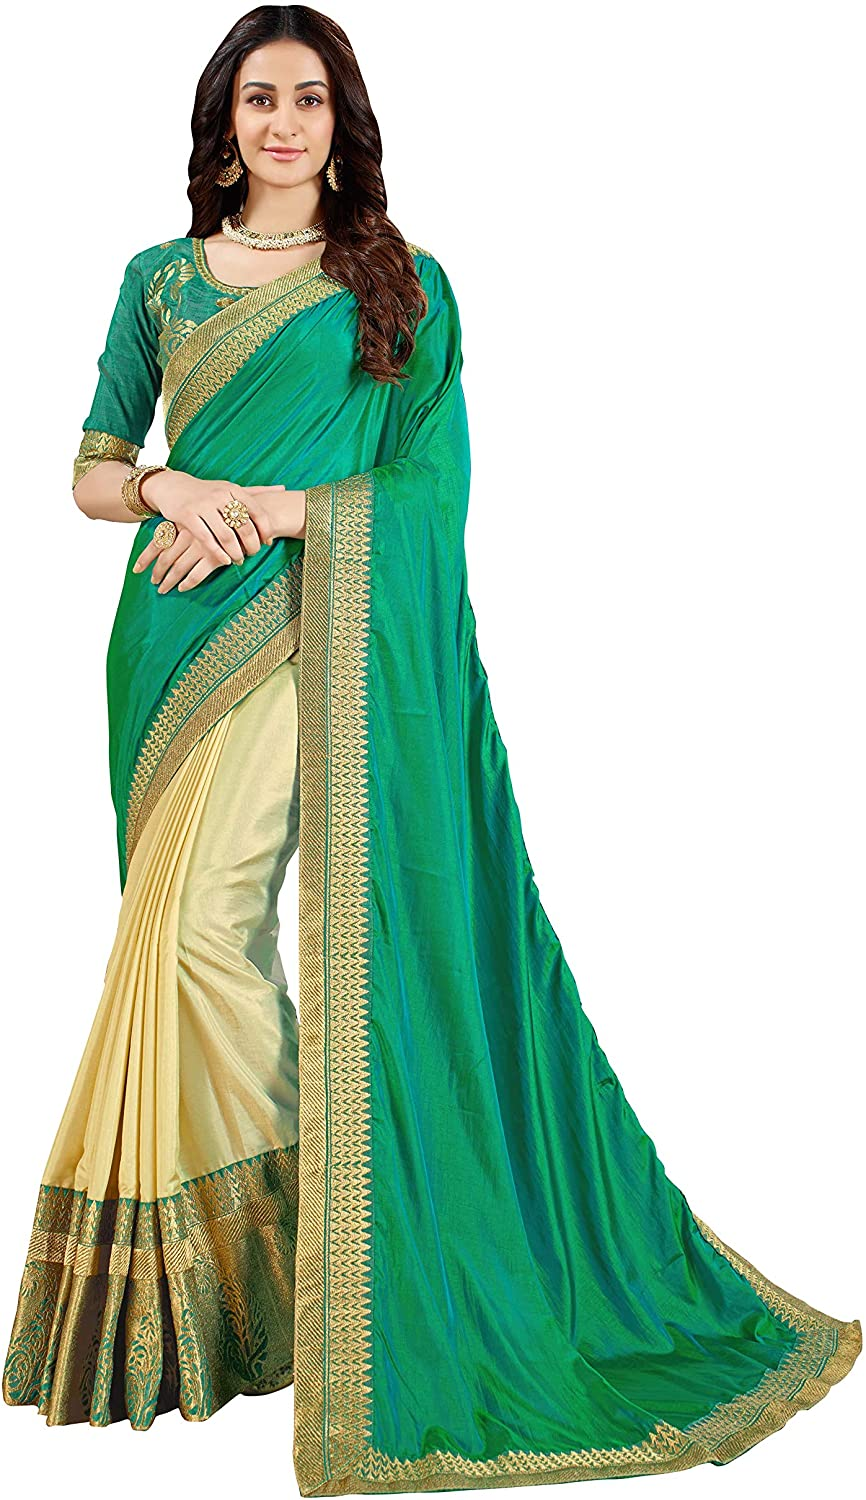 Manohari Embroidered Green Art Silk Saree with Blouse Piece